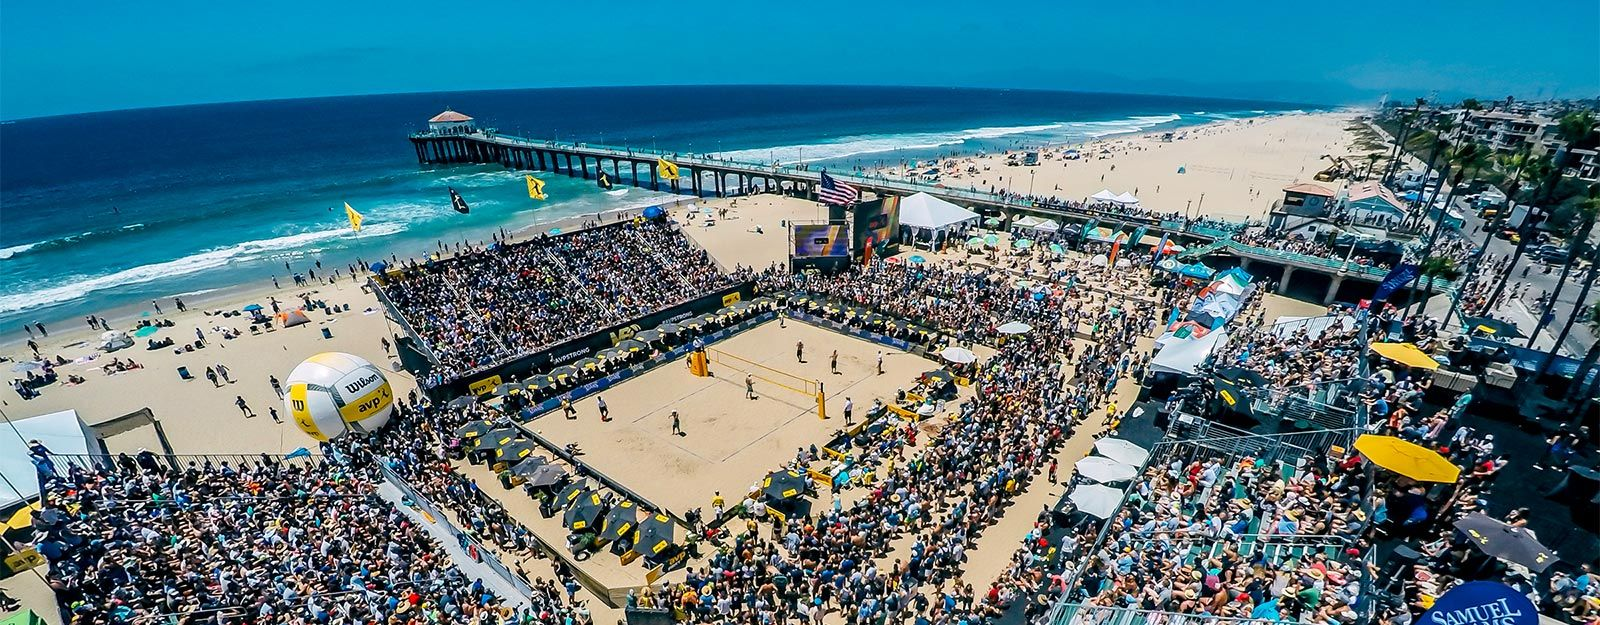 The Manhattan Beach Open Happens Every Year And Every Year Four Athletes Get To Place Their Name In History The Manhattan Beach Pier Beach Manhattan Beach